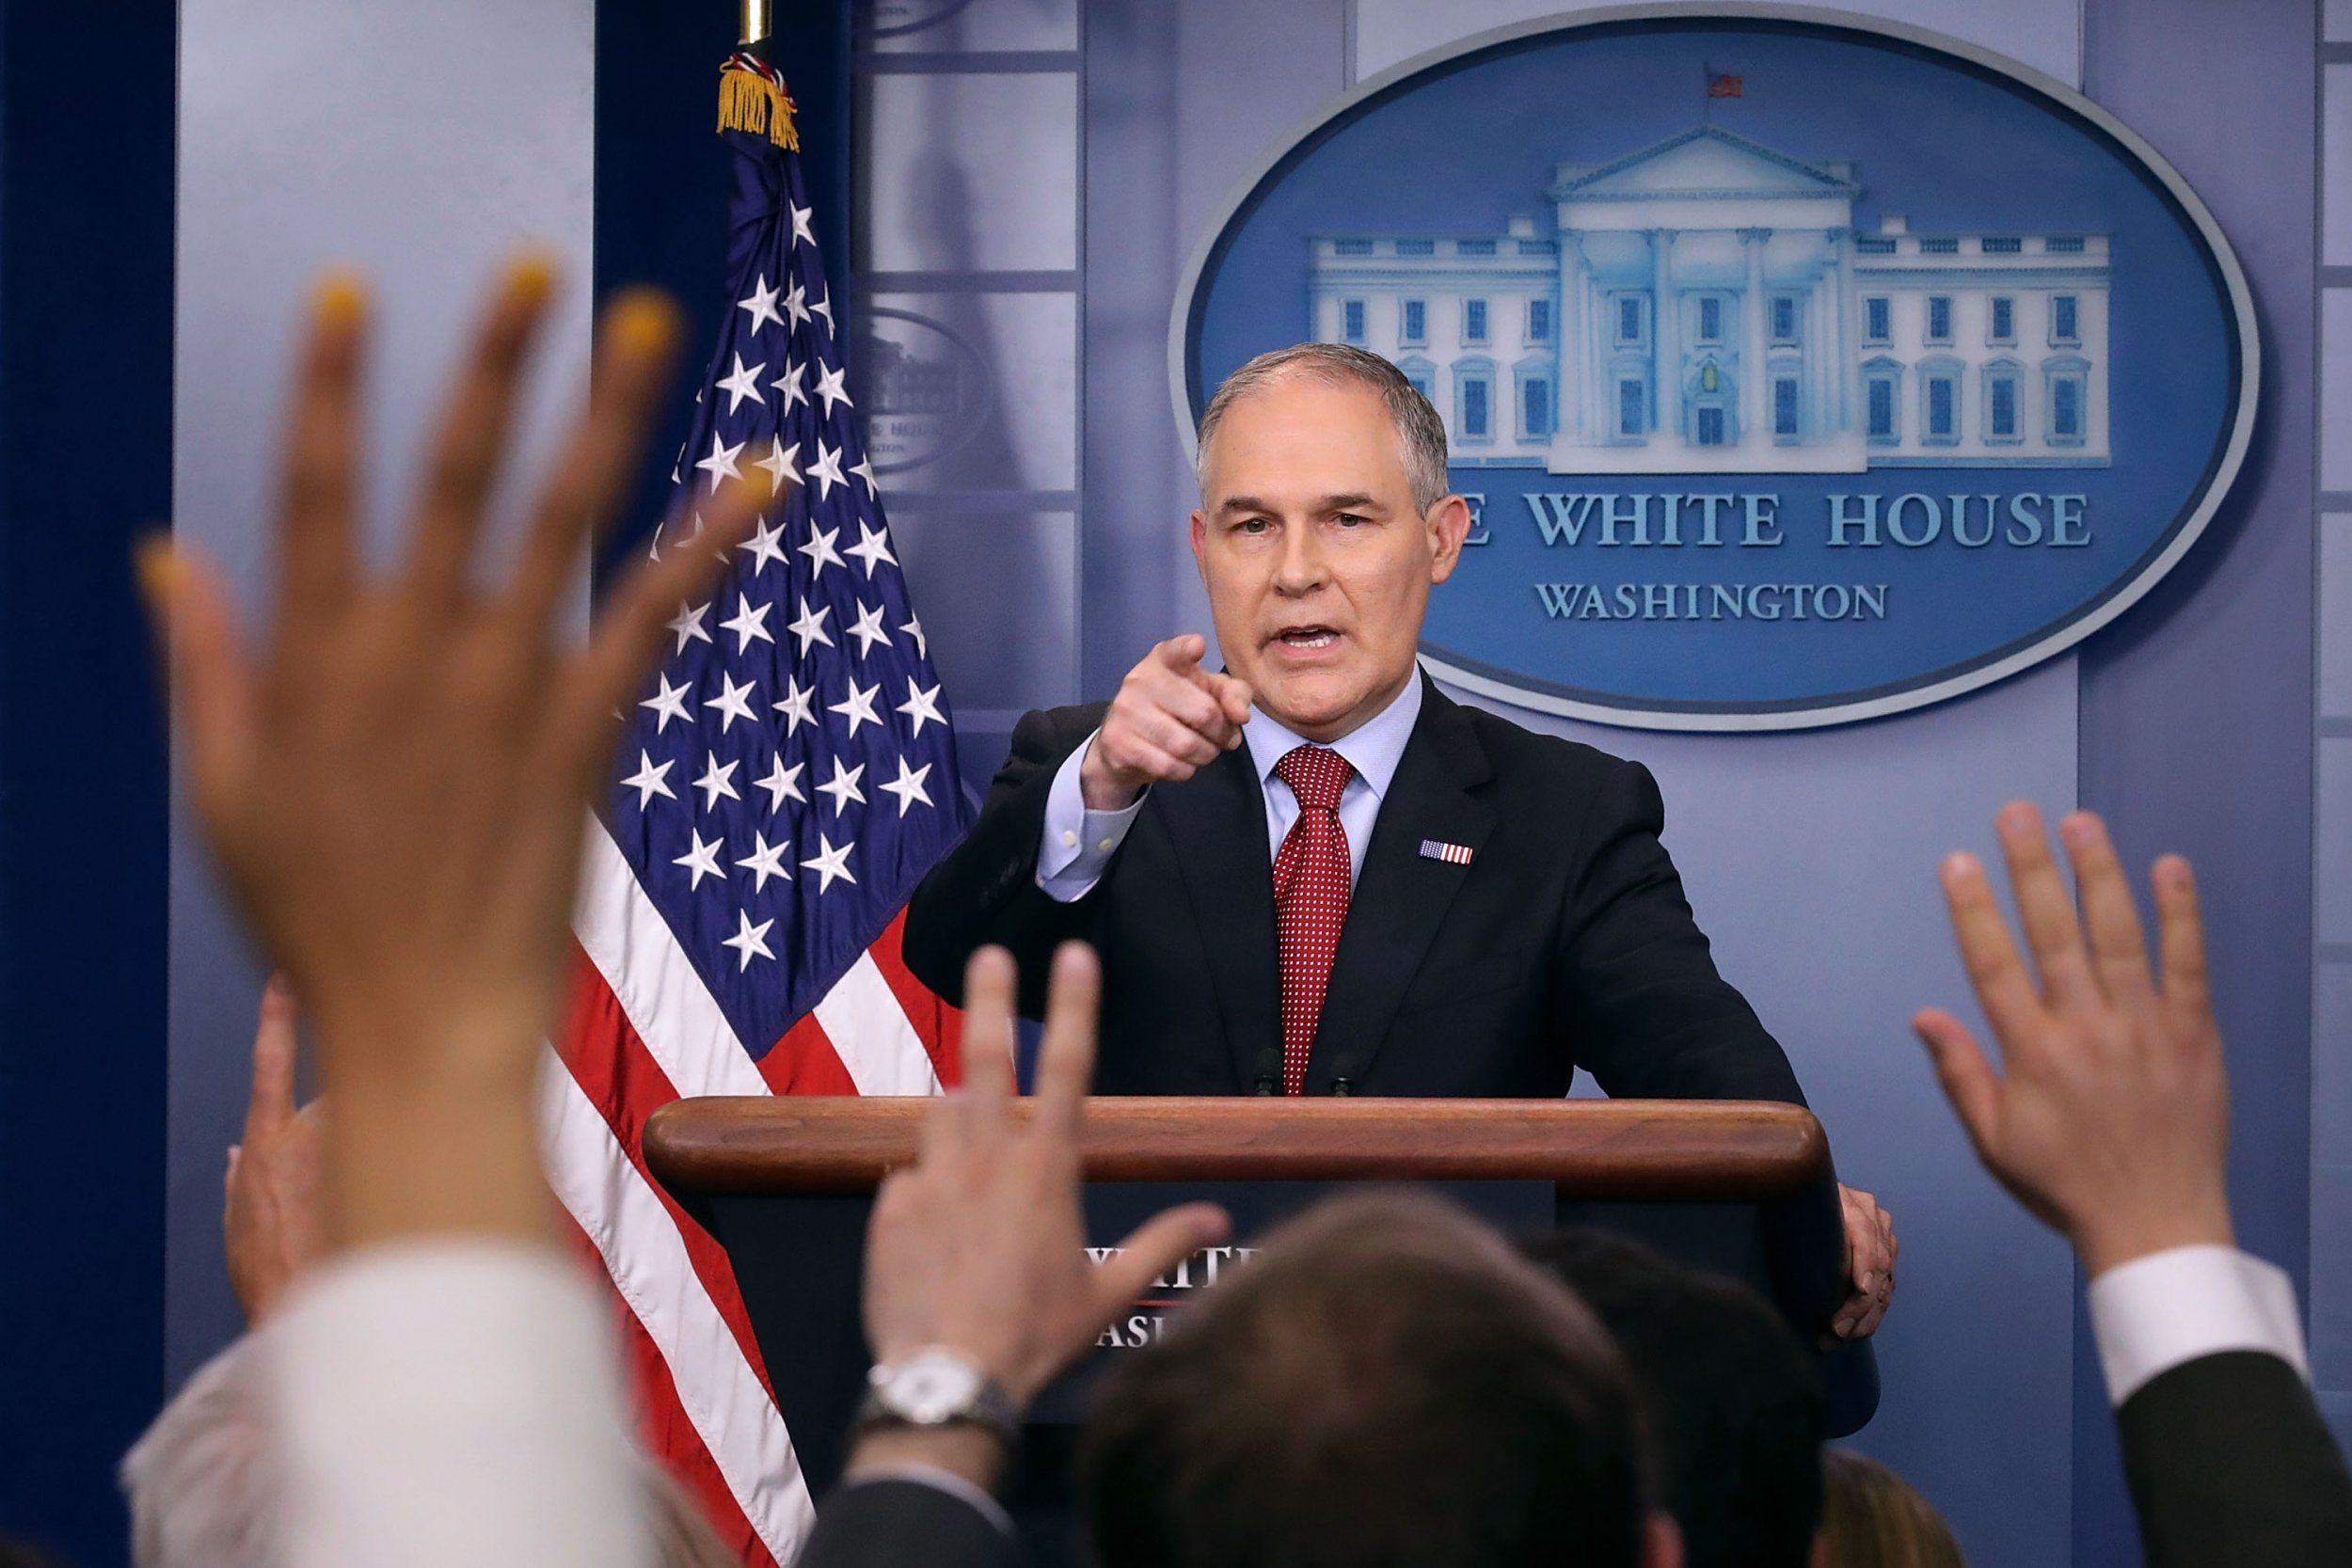 Scott Pruitt's EPA will repeal the Clean Power Plan, which Americans actually like